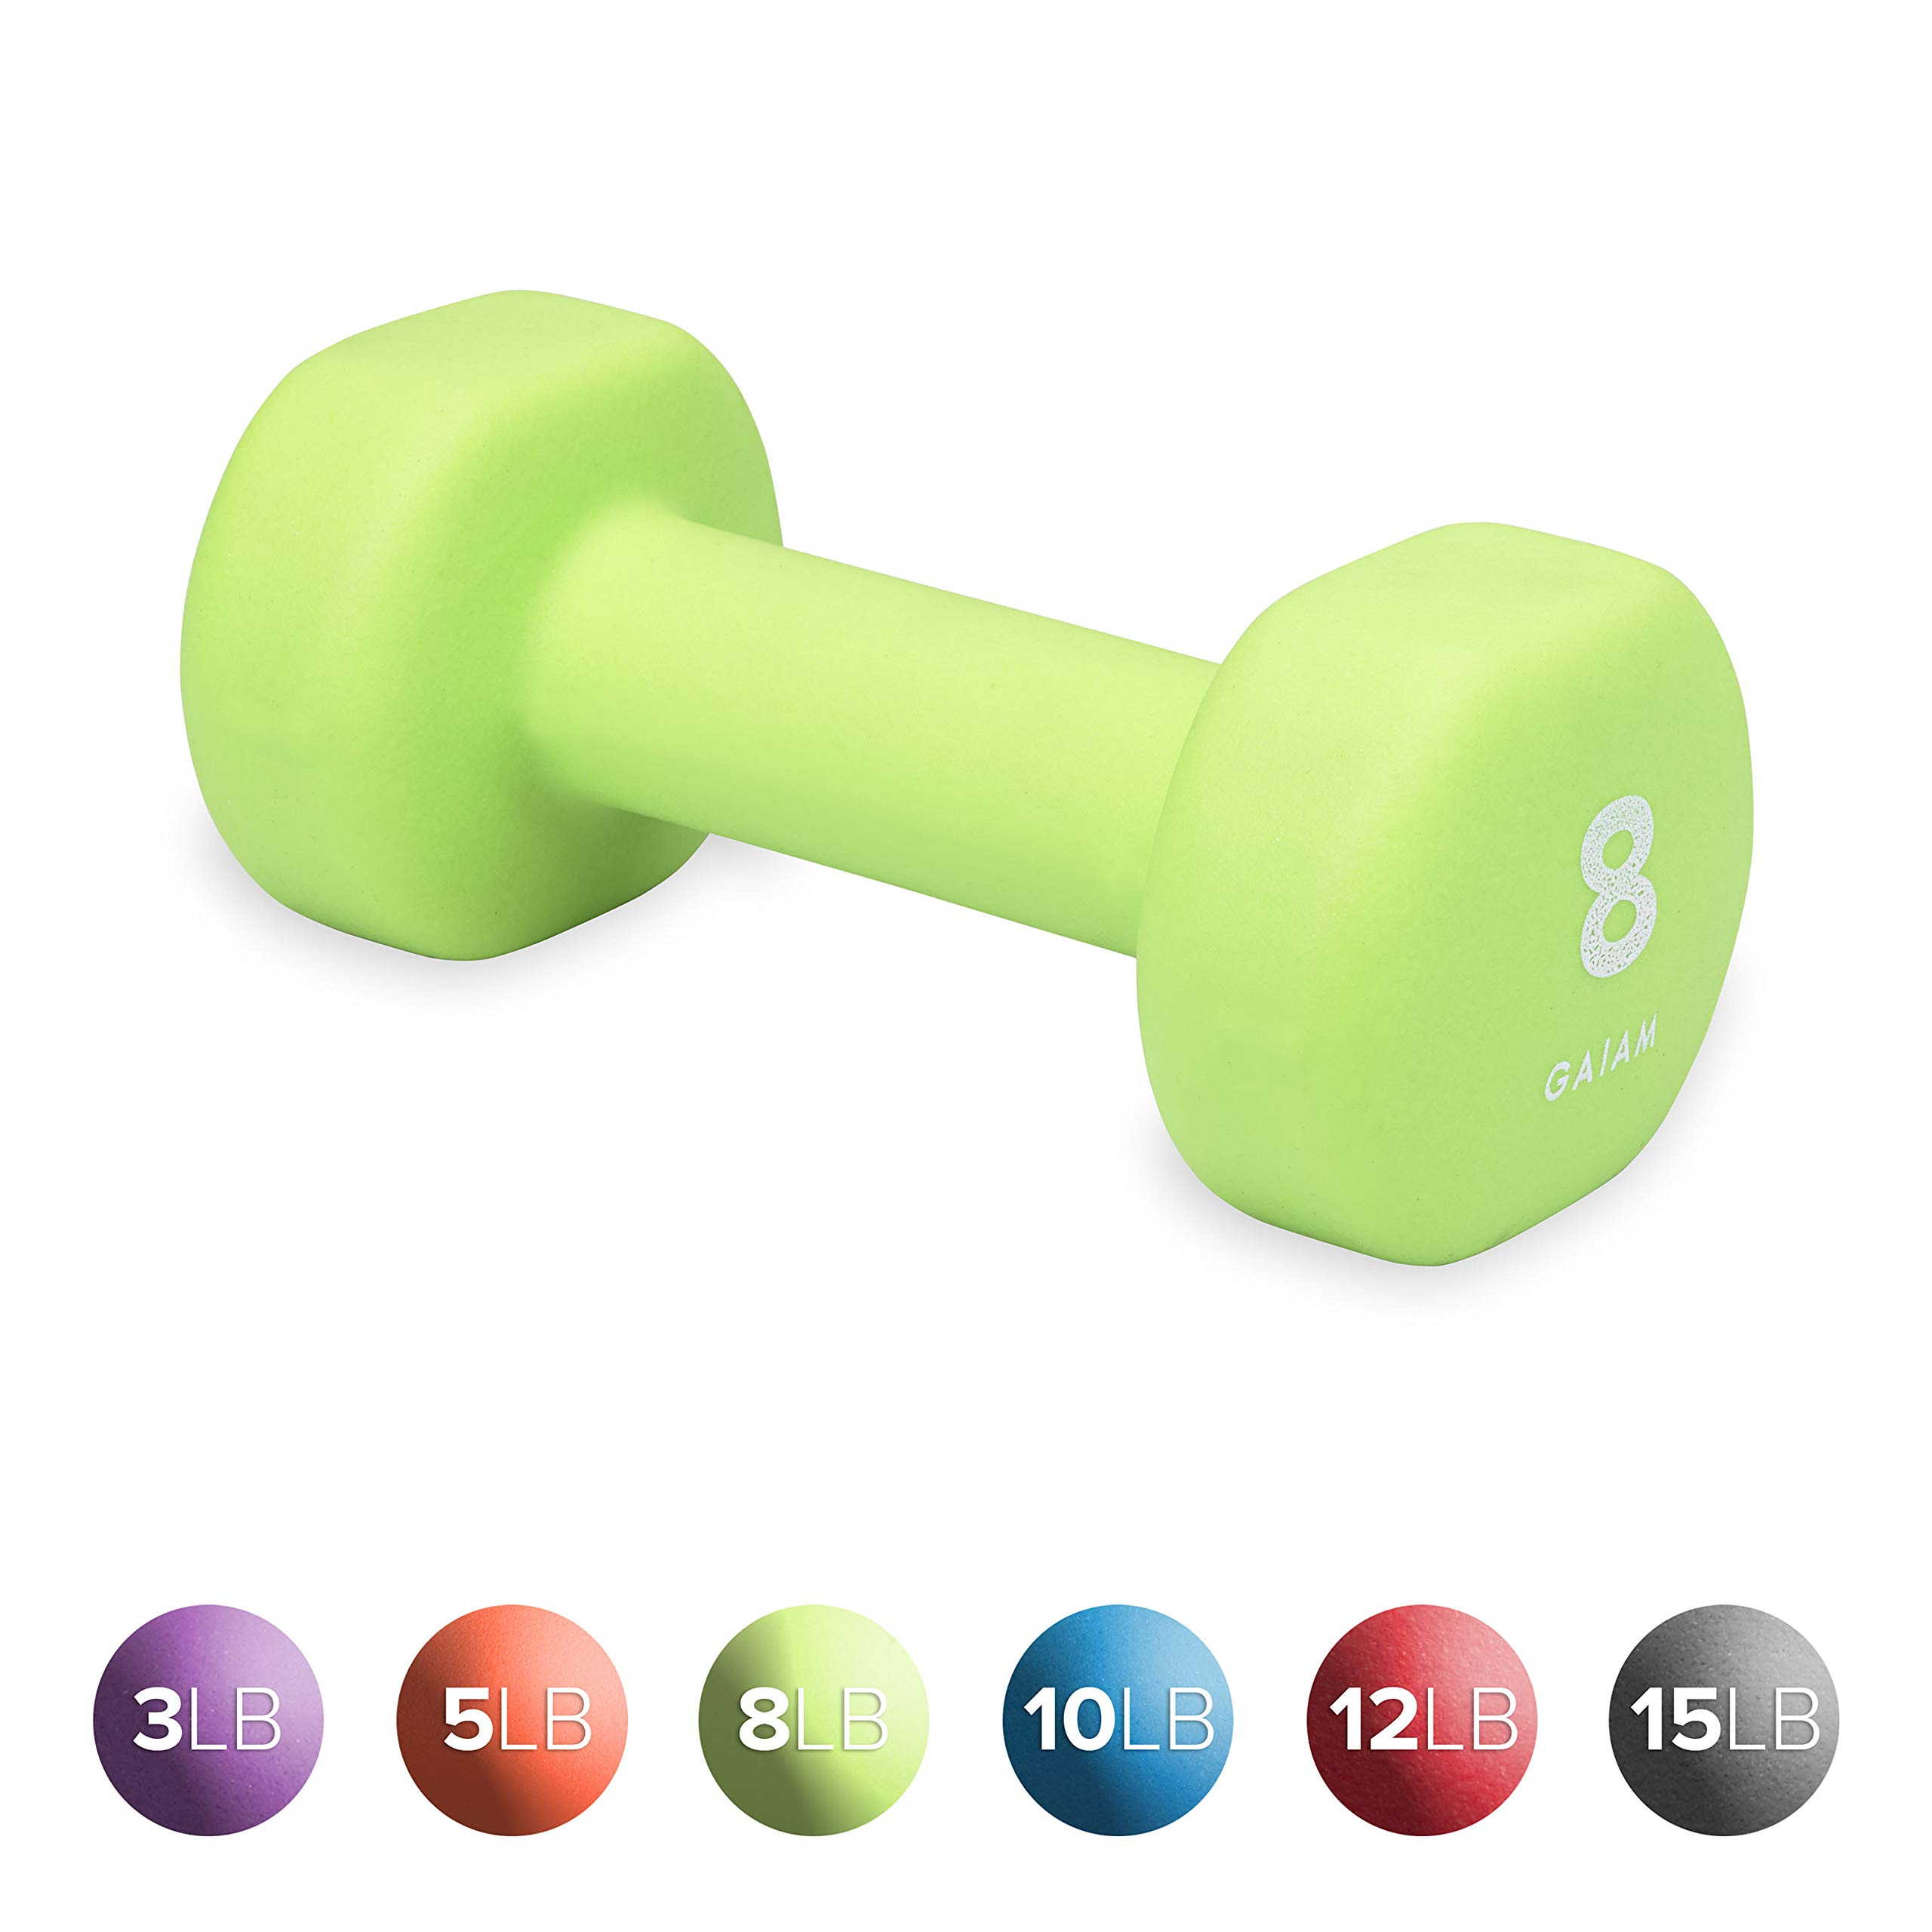 Gaiam Neoprene Dumbbell Hand Weight, Green, 8 lb (Sold as Single Dumbbell)